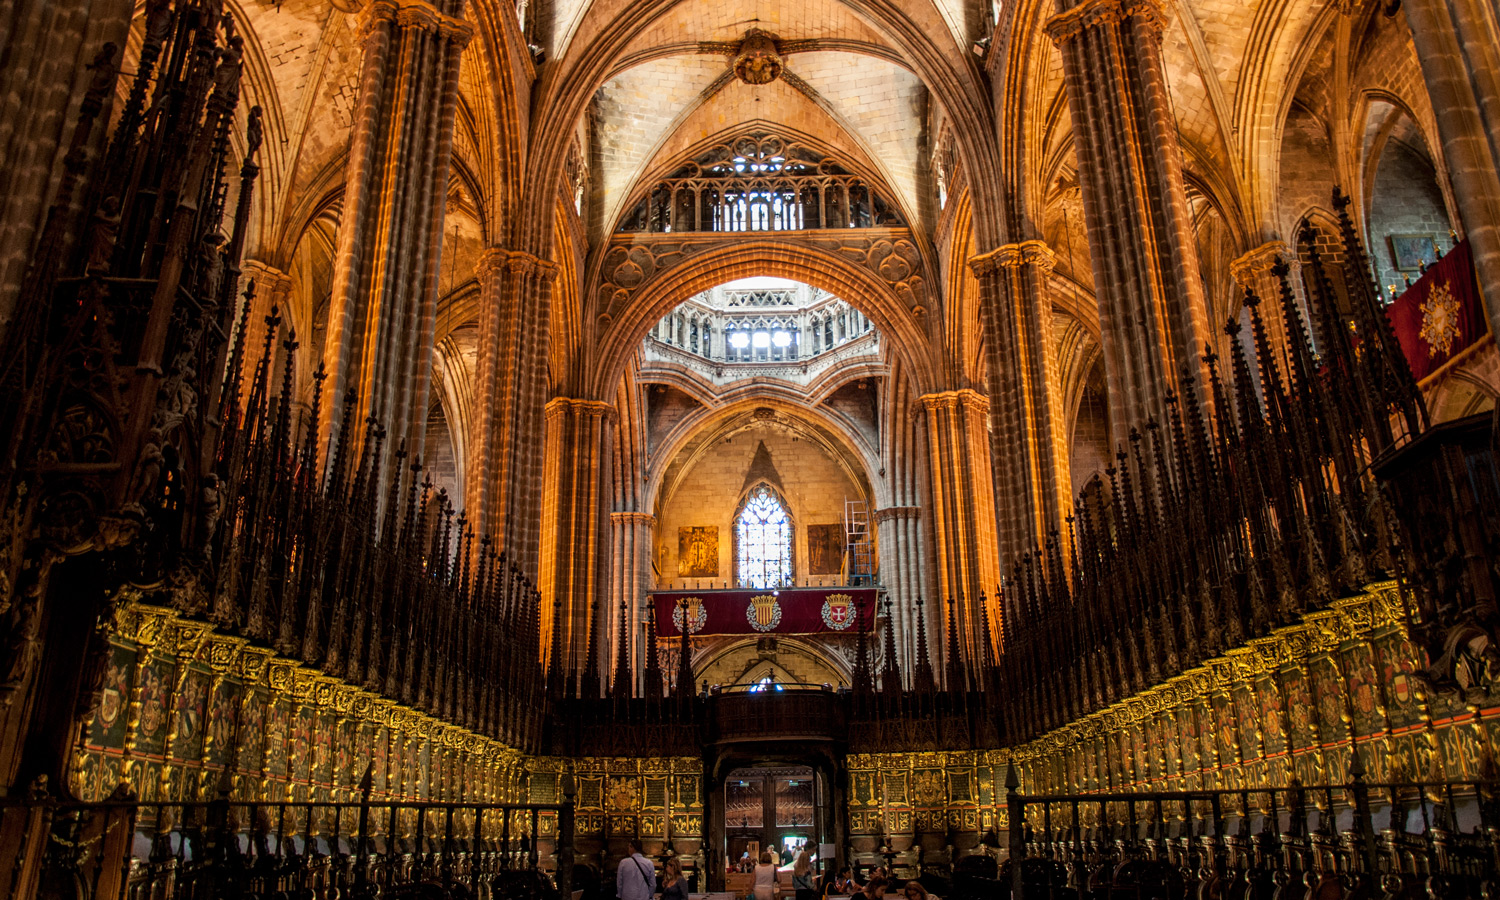 Cathedral of Barcelona interior